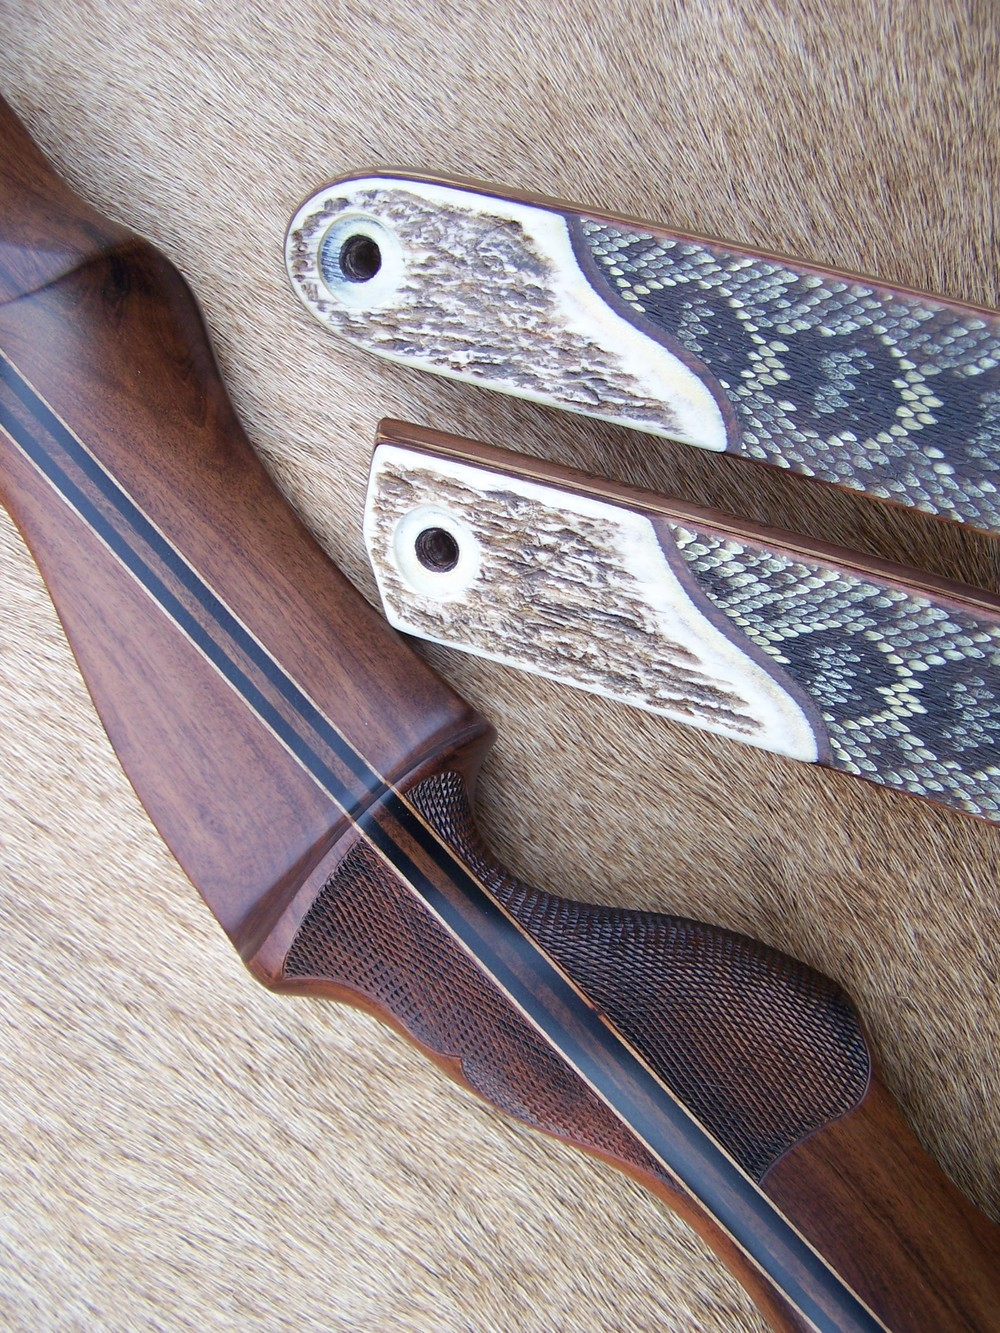 Macassar Ebony Riser- Diamondback skins with Anlter limb bases